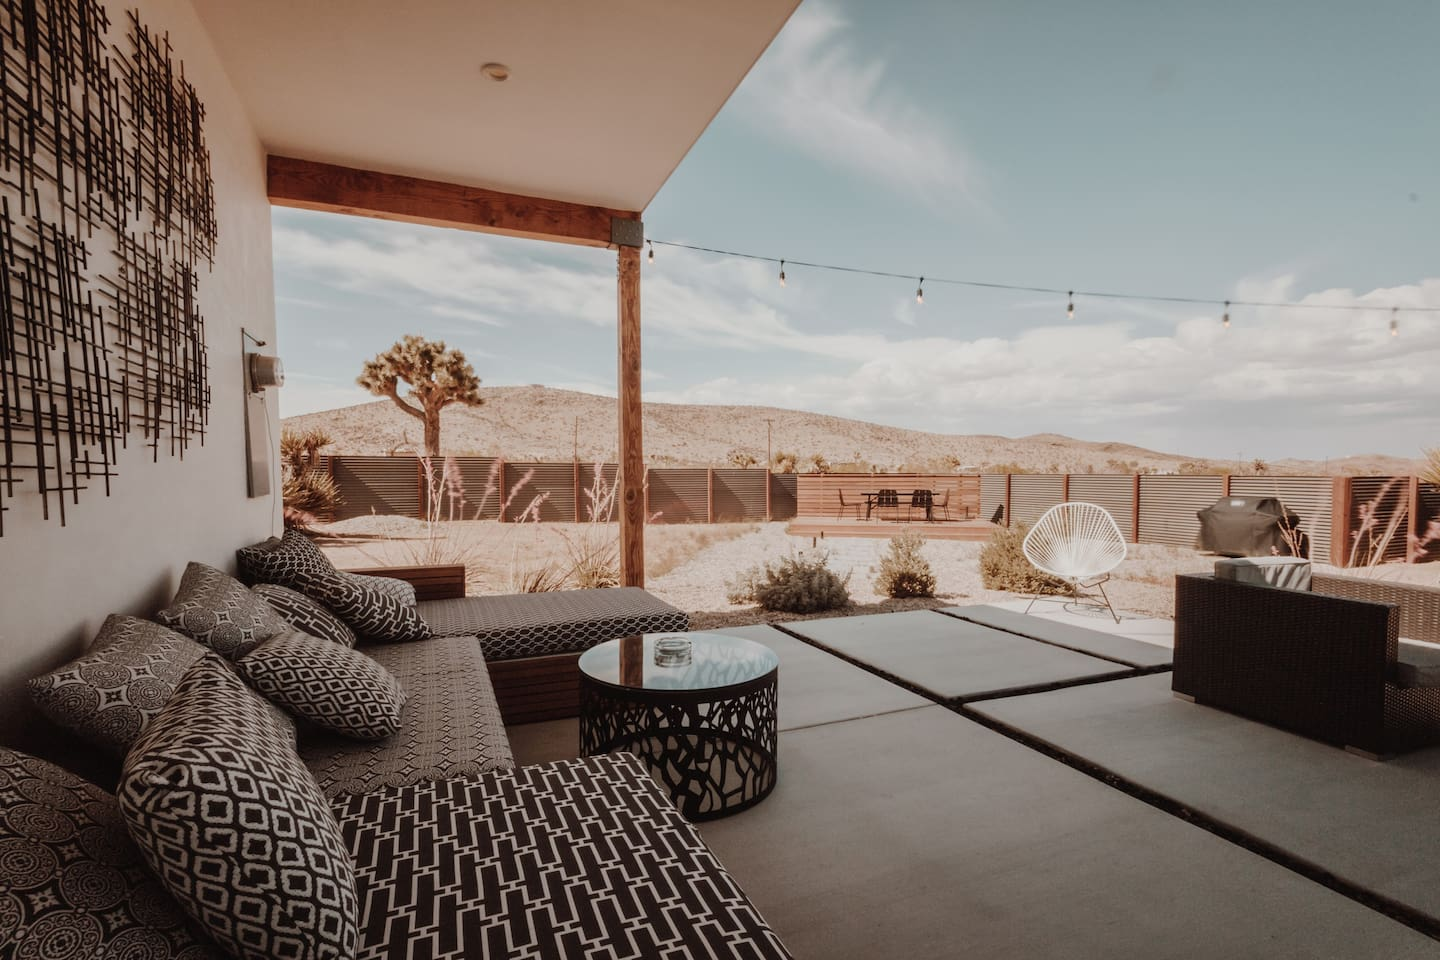 Endless sky, stunning mountains view, fresh air and... relax. Welcome to The Serenity Escape in Joshua Tree.